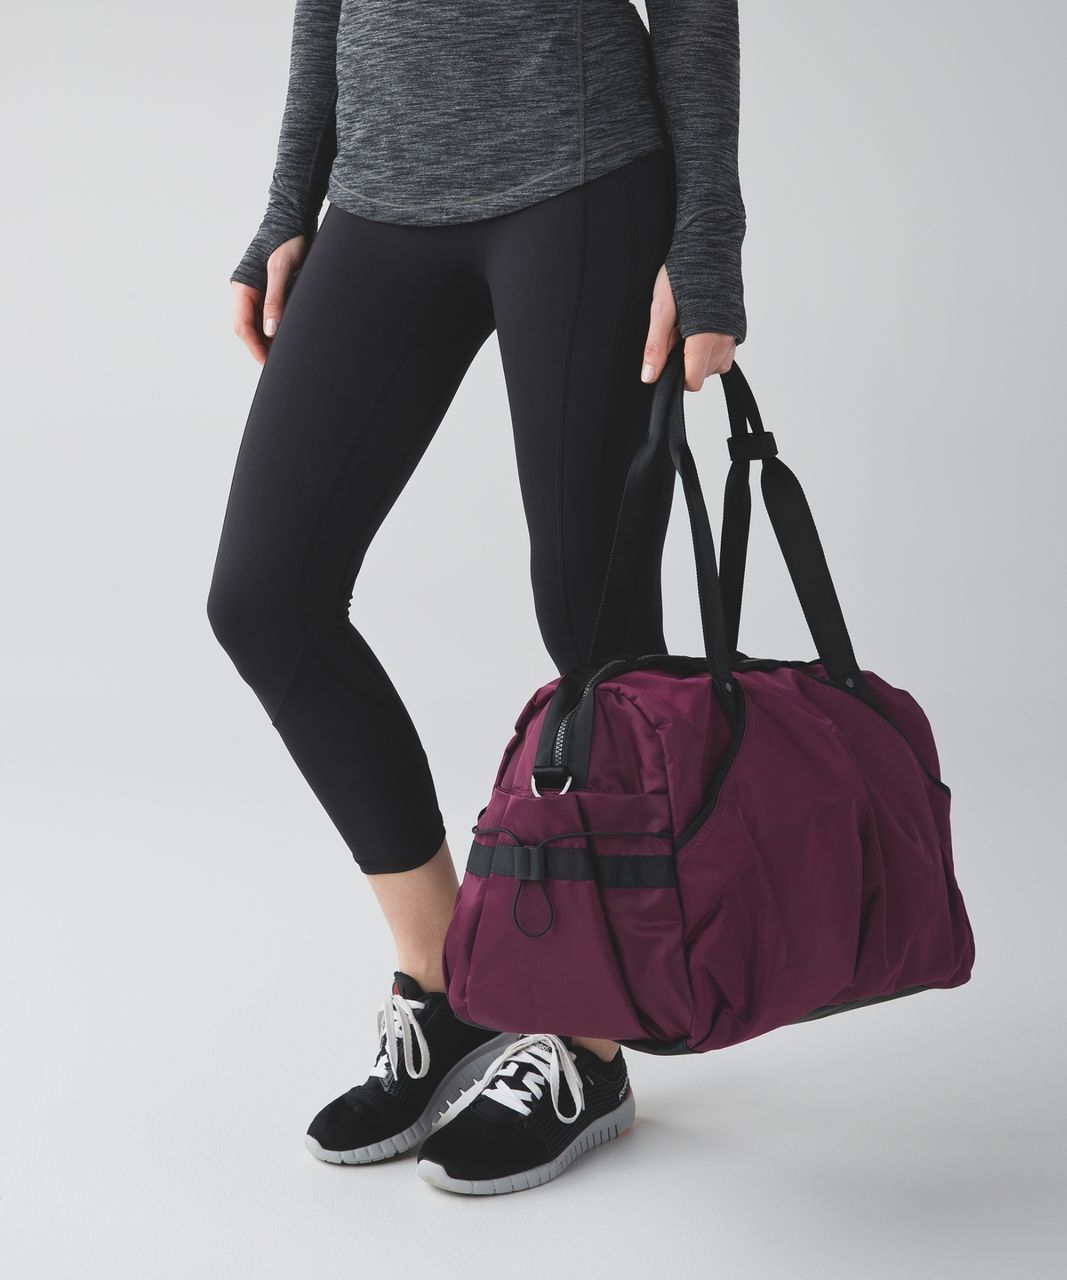 Lululemon Extra Mile Duffel - Red Grape / Black